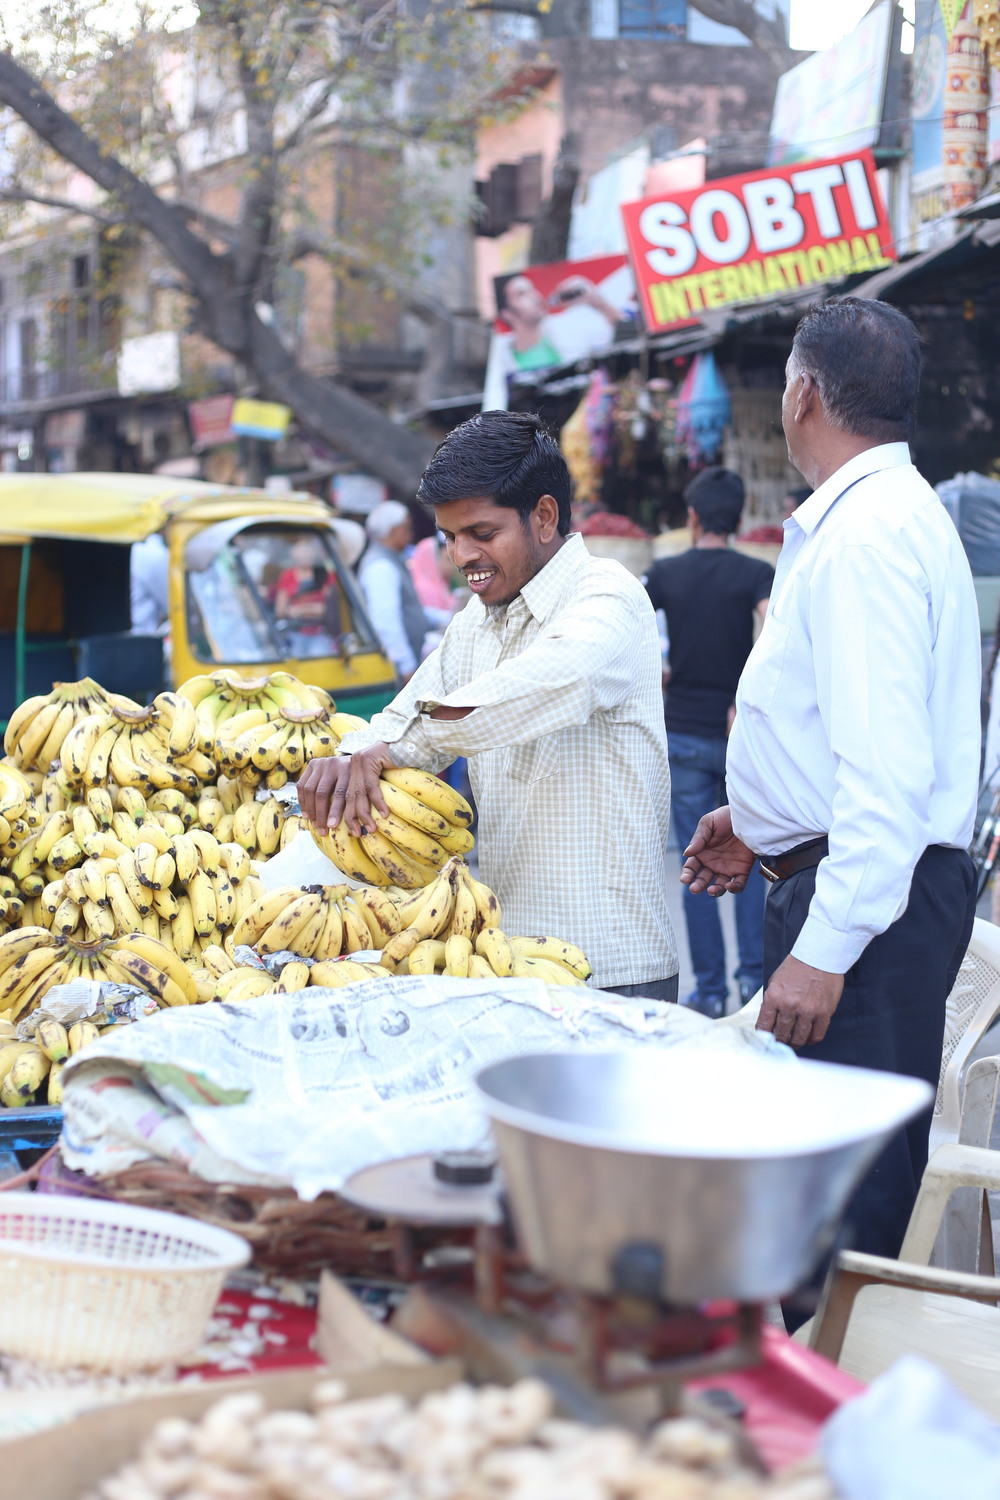 Banana stand - New Delhi, India